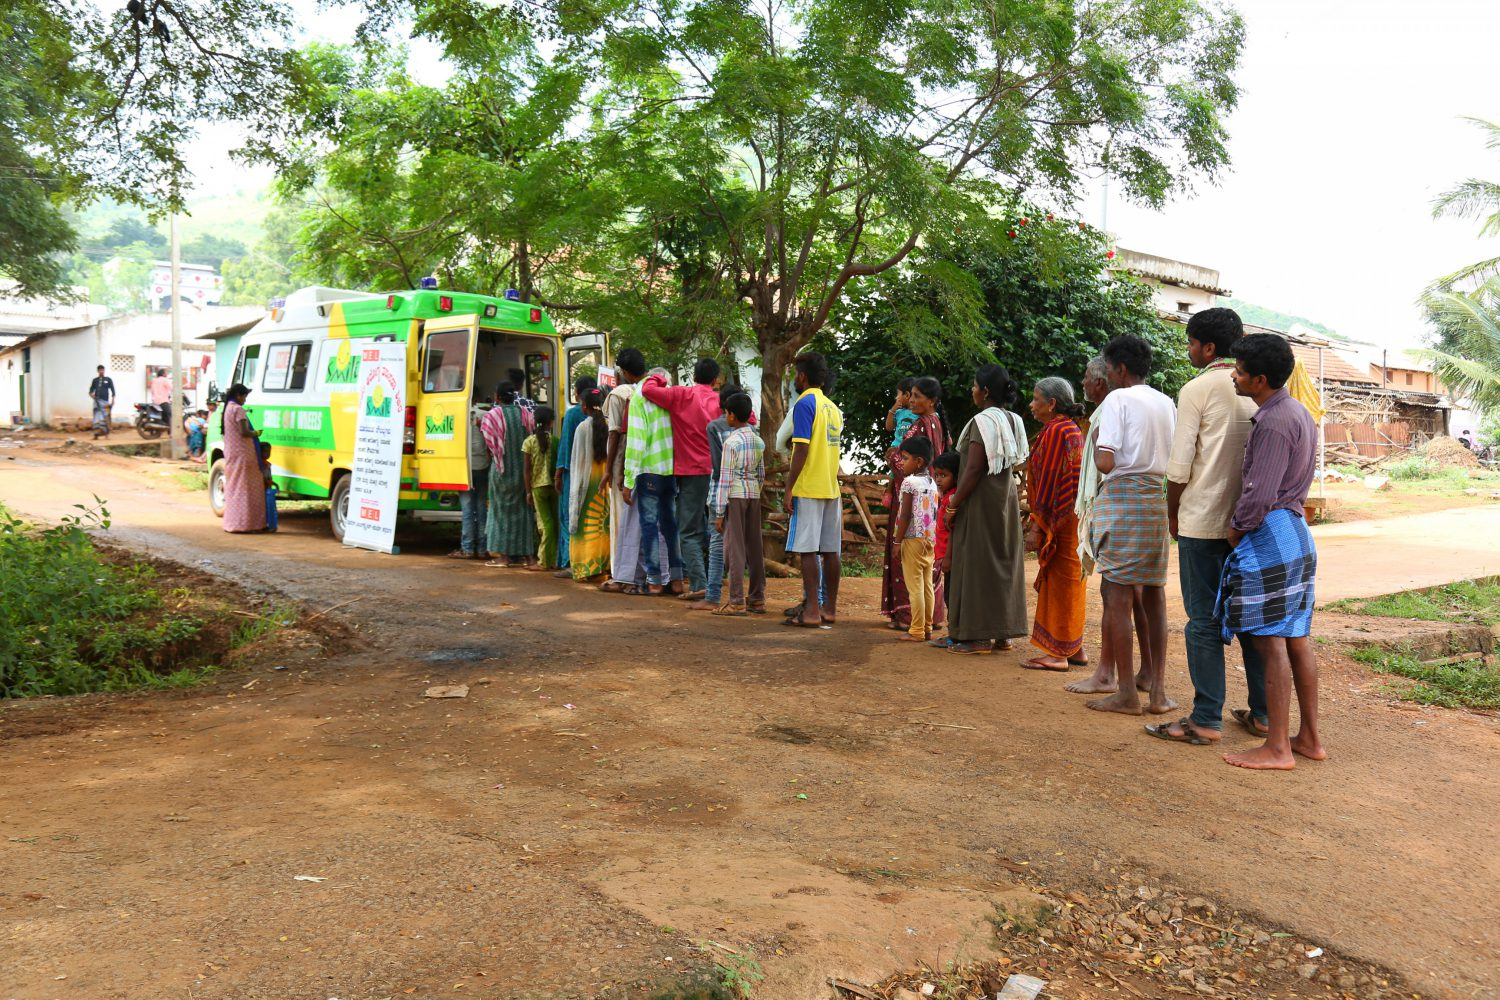 People seeking healthcare services